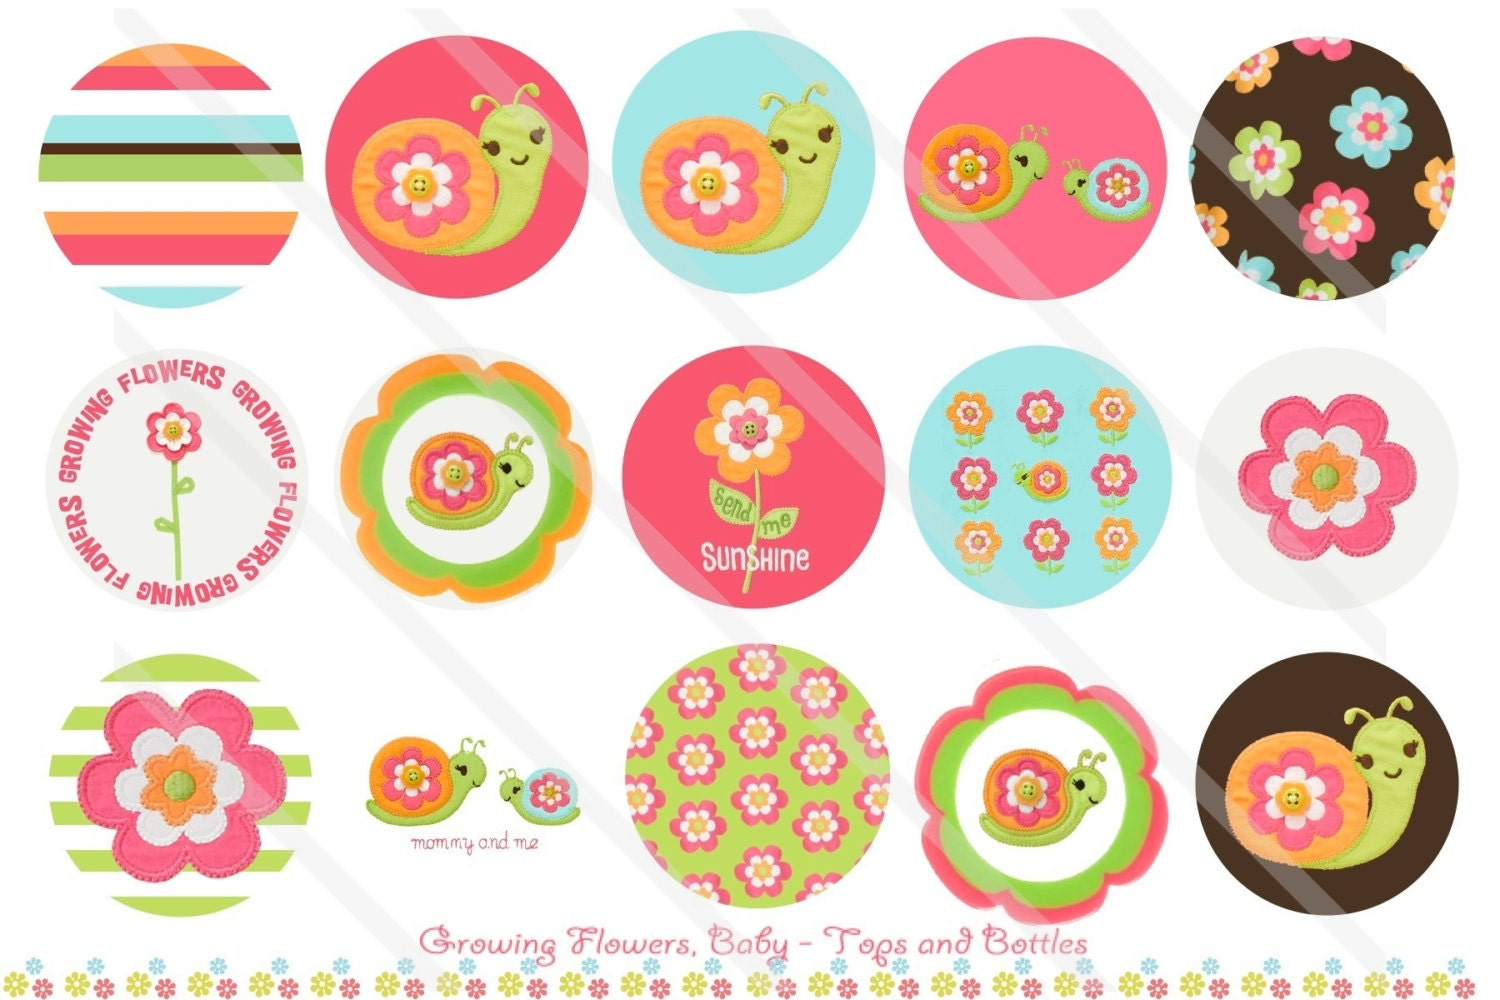 growing flowers baby m2mg 1 inch circles collage sheet for Suitcase Clip Art Suitcase Clip Art